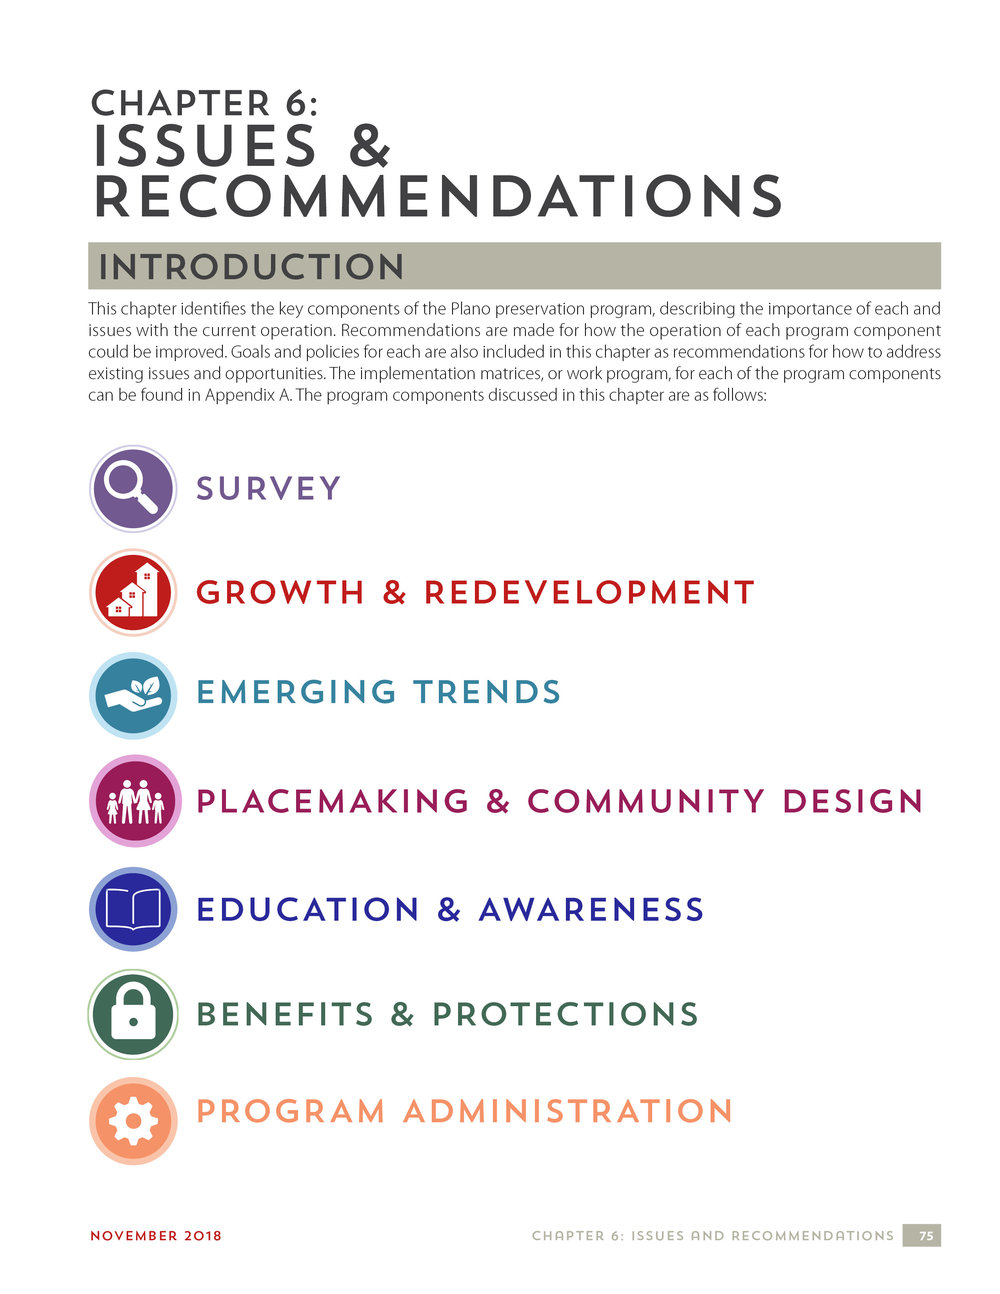 06 - Issues & Recommendations